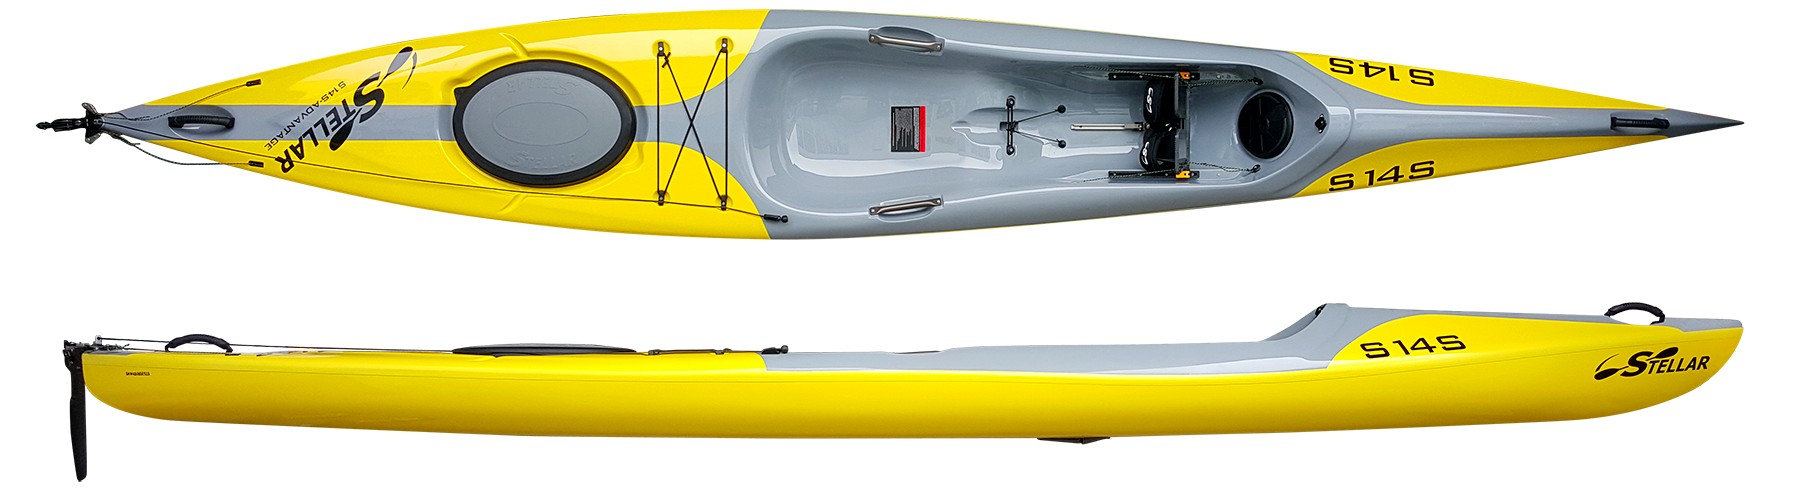 Choosing a Kayak - 5-Star Yak Pak